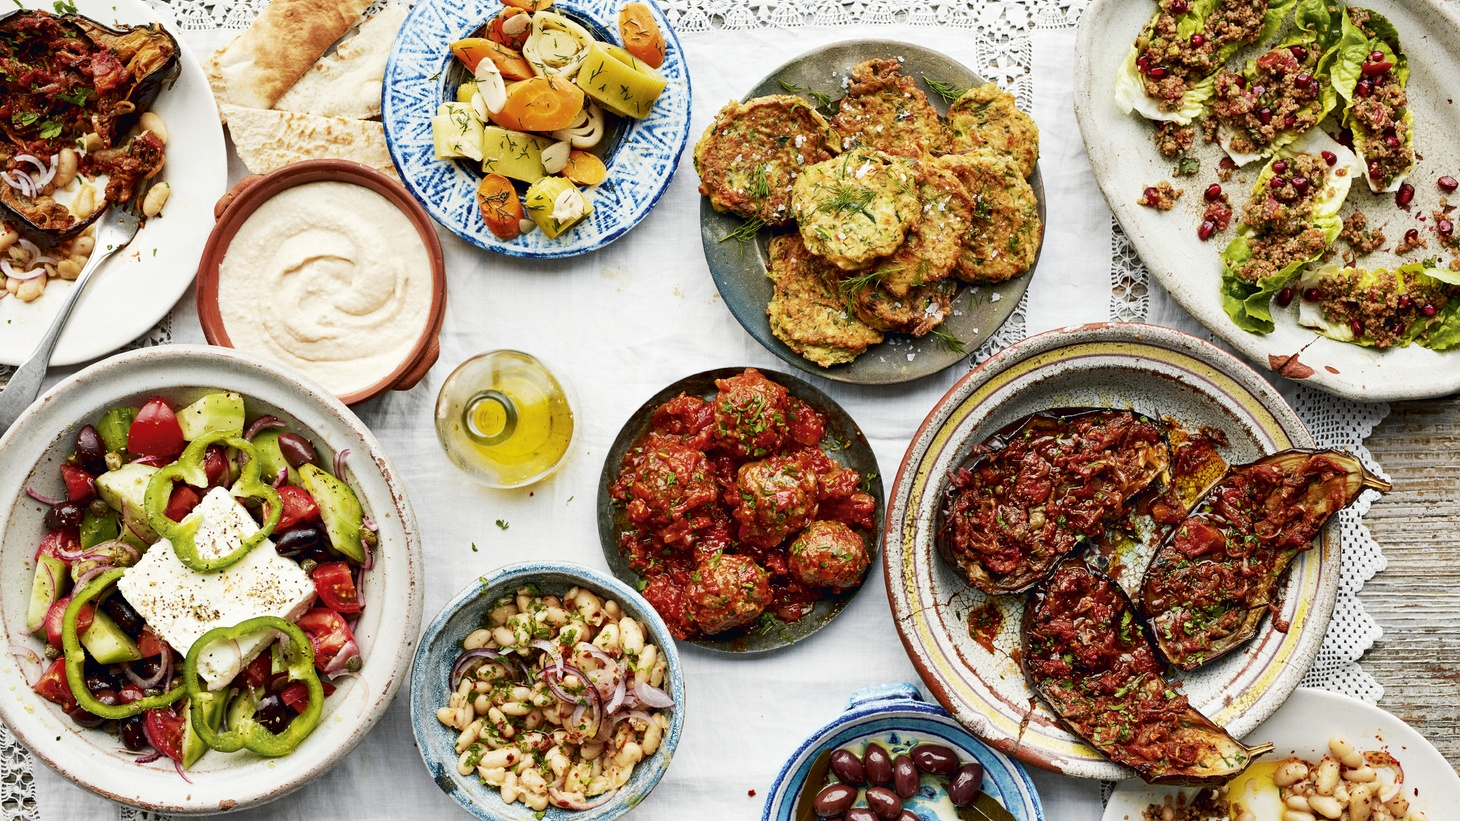 """Yasmin Khan traveled through the Eastern Mediterrean countries of Turkey, Cyprus, and Greece for her latest book """"Ripe Figs."""""""